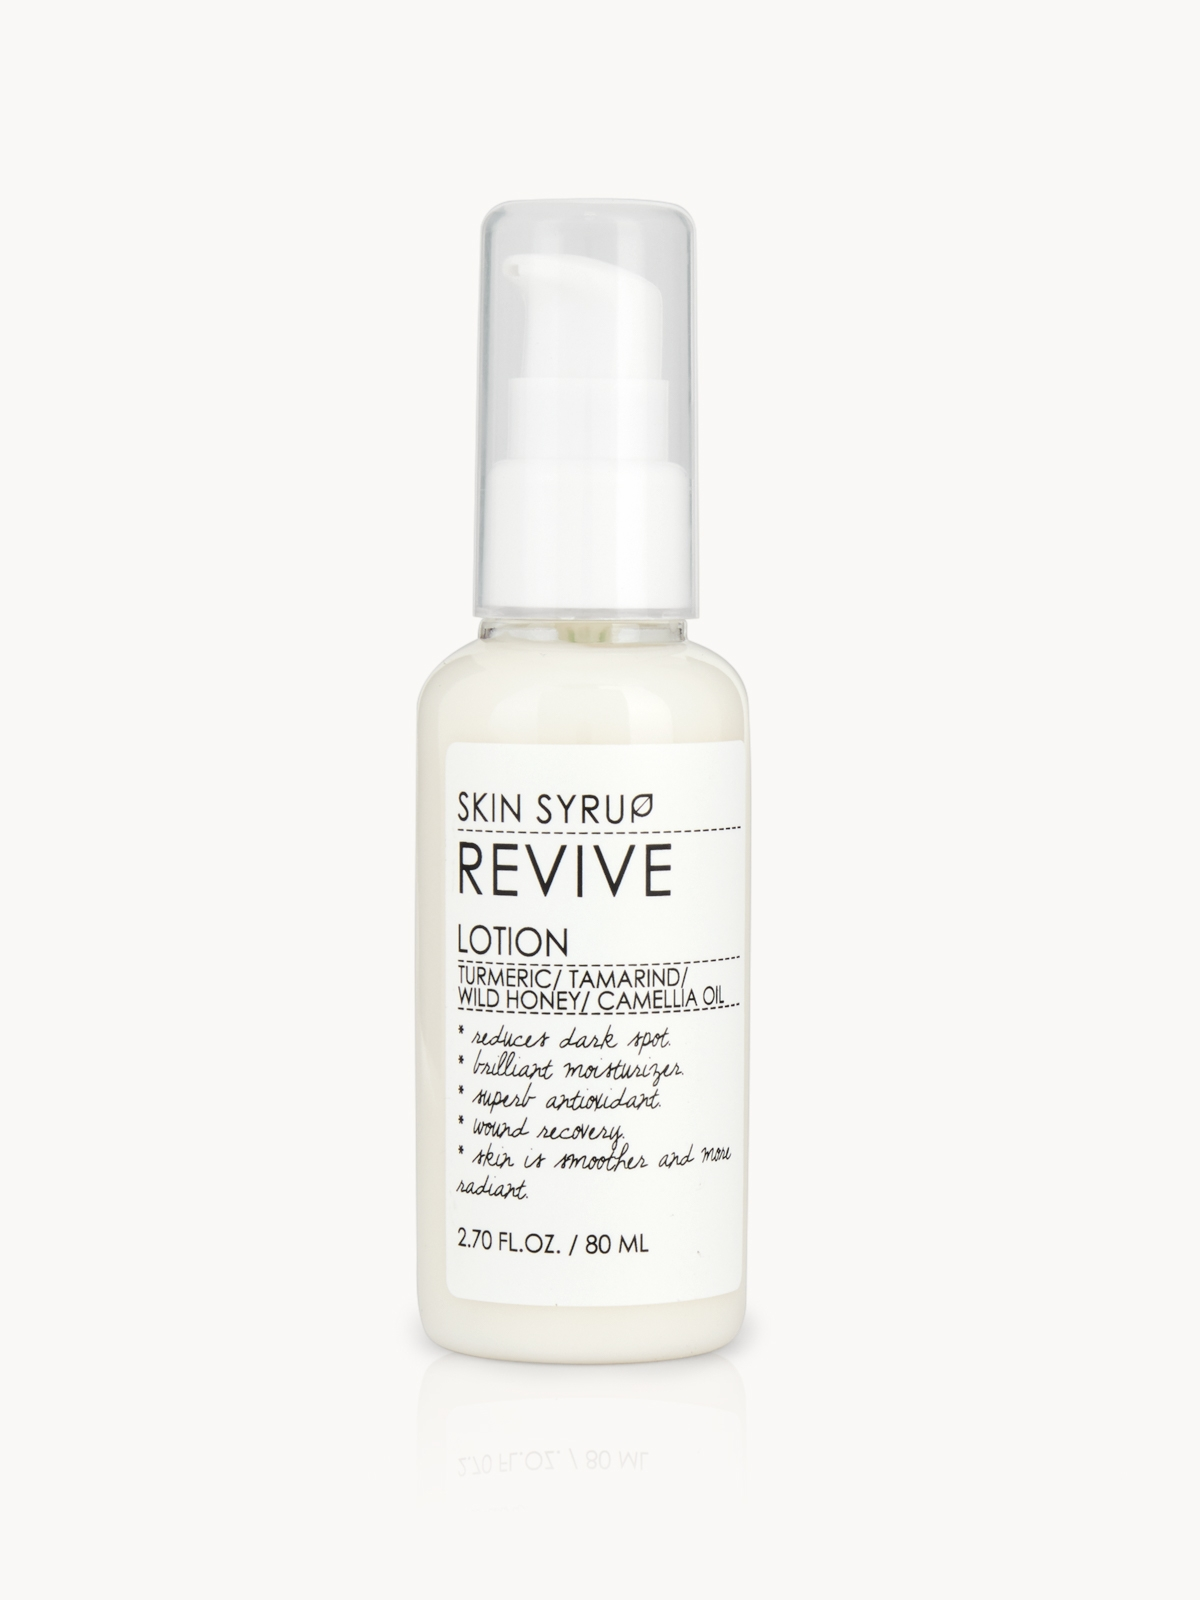 Skin Syrup Revive Lotion